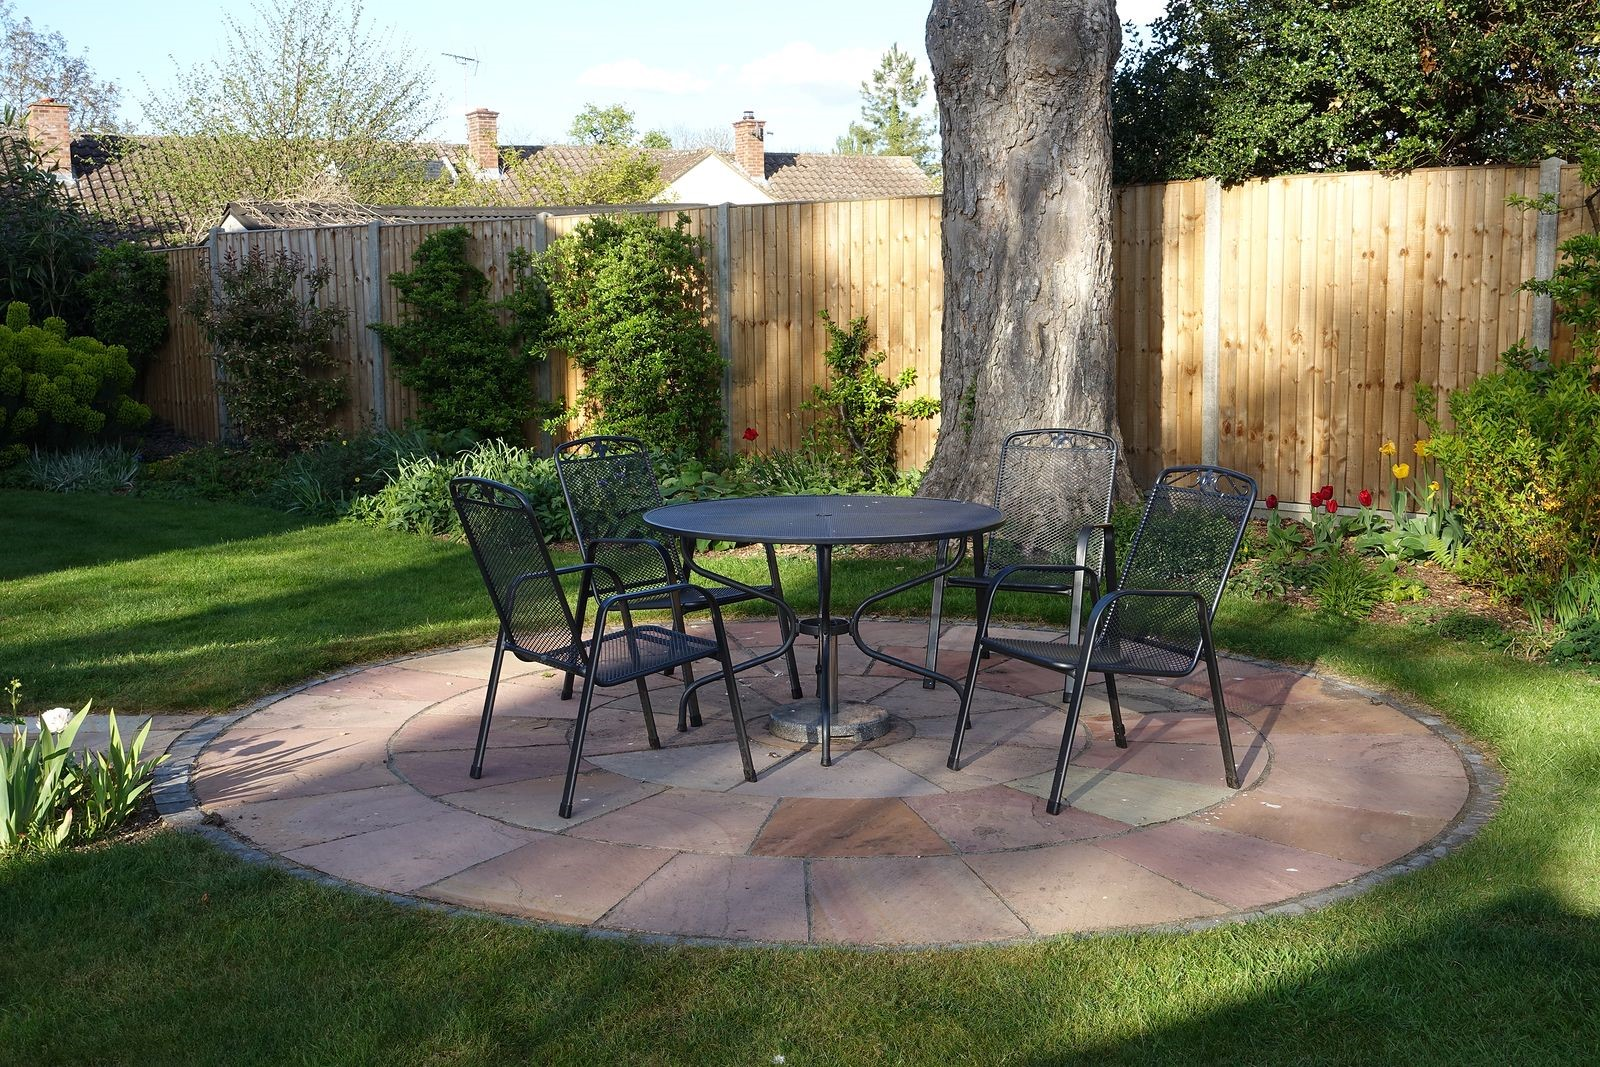 Reasons for Adding Lighting and Fencing to Services From Landscapers